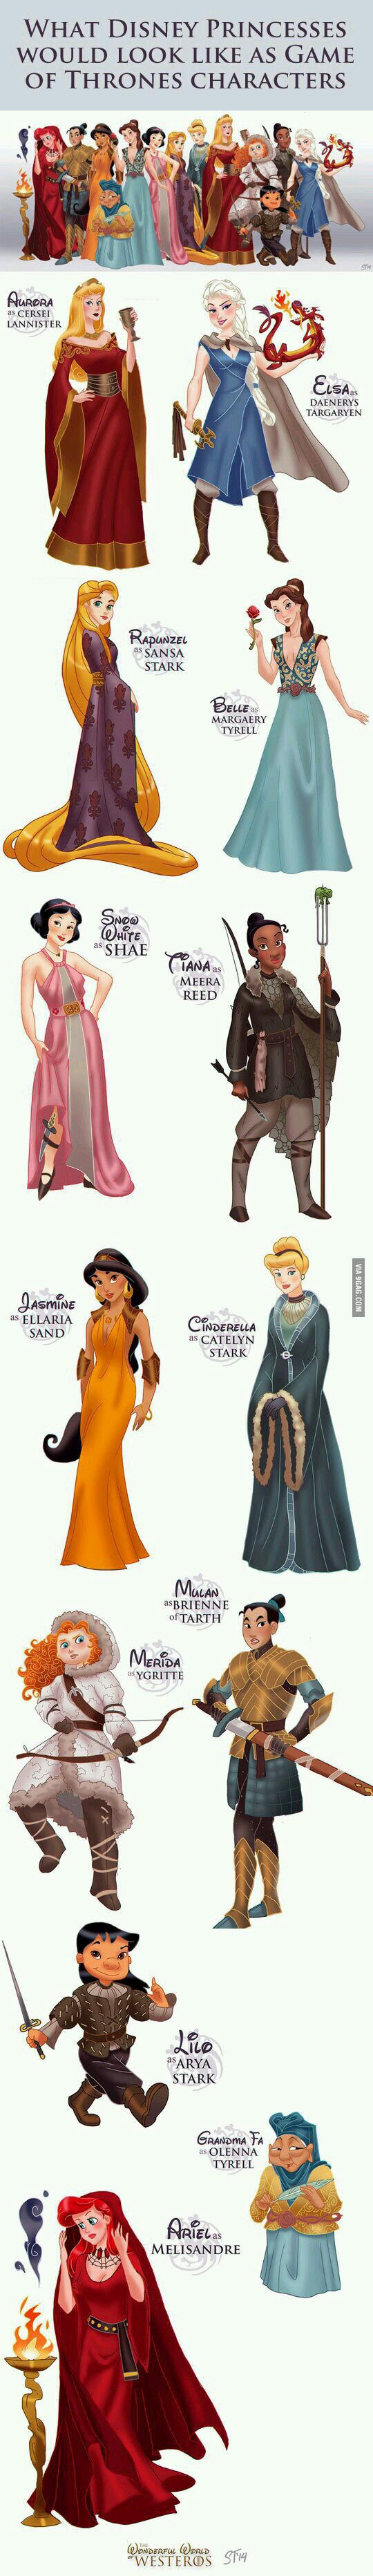 "What ""Disney"" Princesses Would Look Like As ""Game Of Thrones"" Characters"